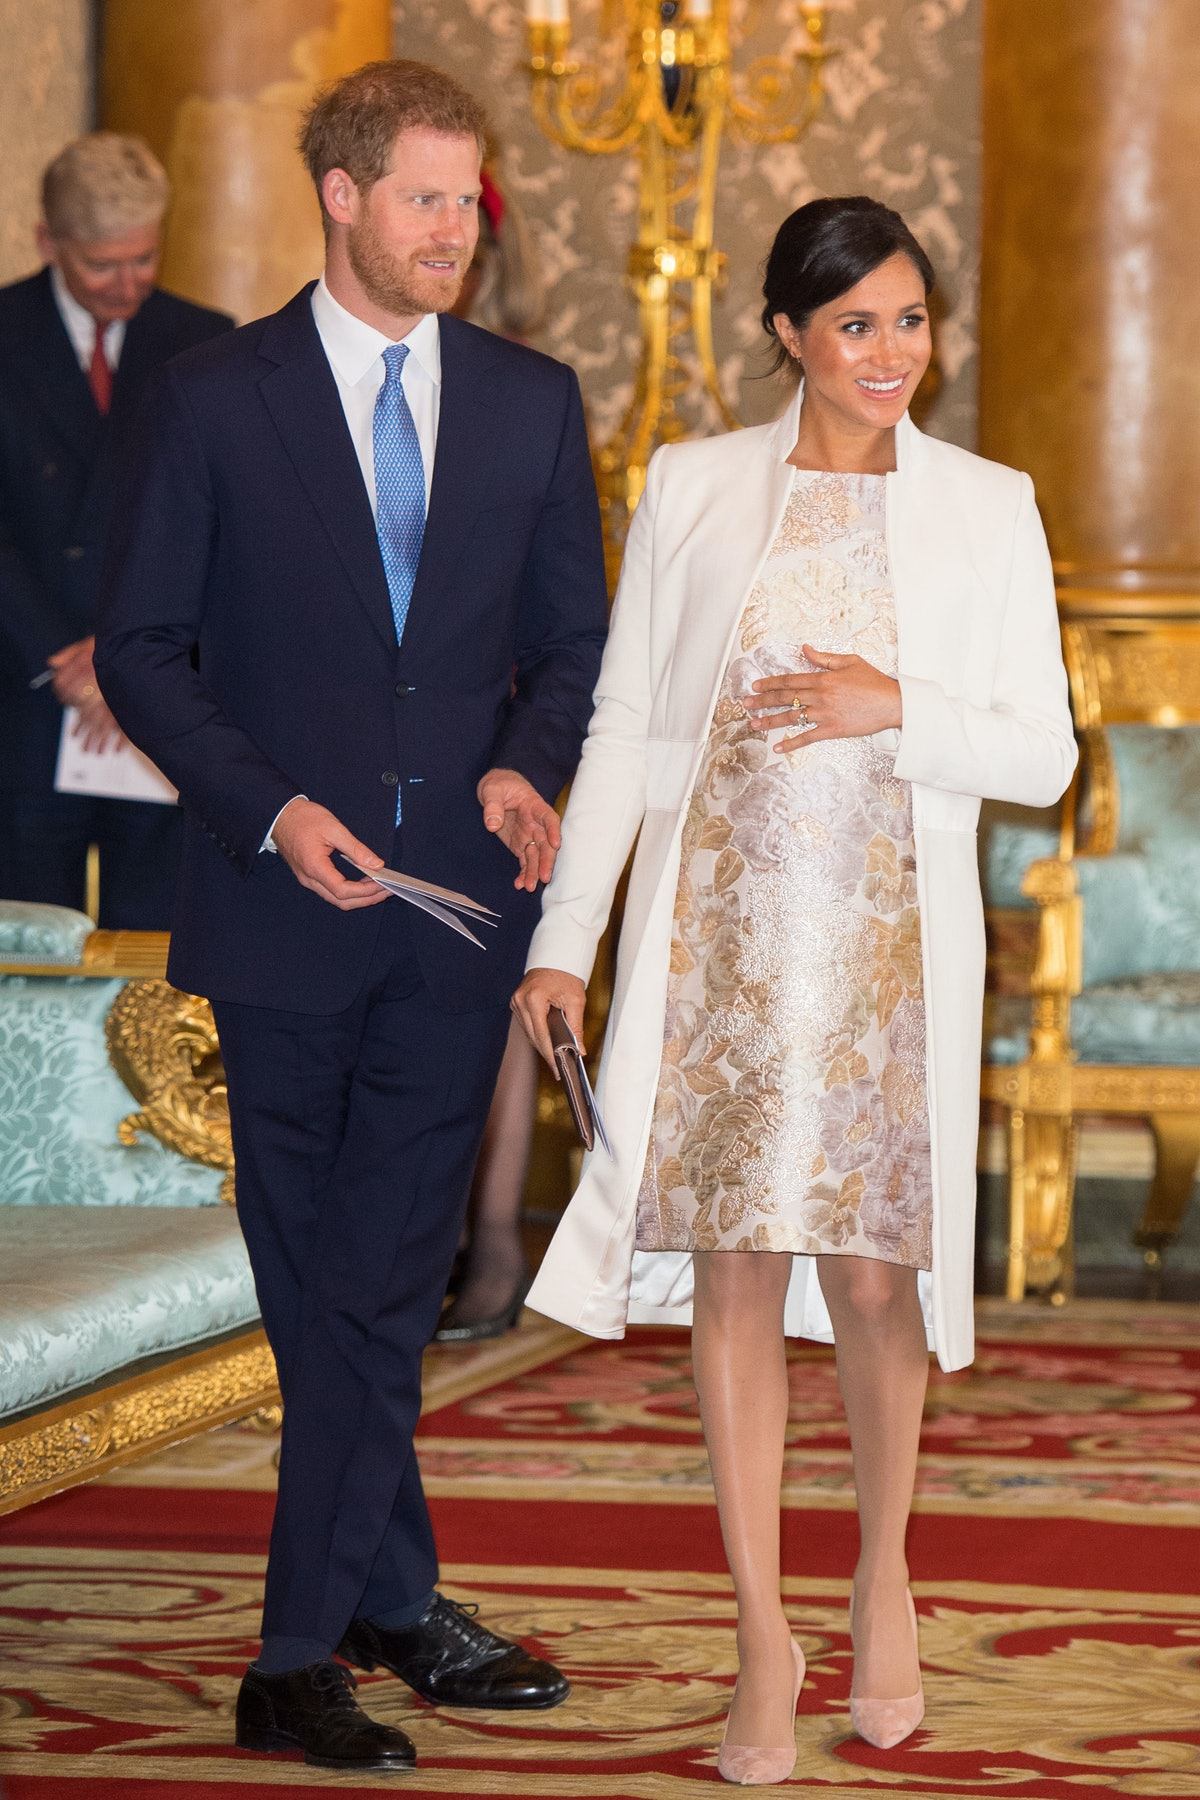 Meghan Markle and Prince Harry attend a reception at Buckingham Palace in London, England in March 2...